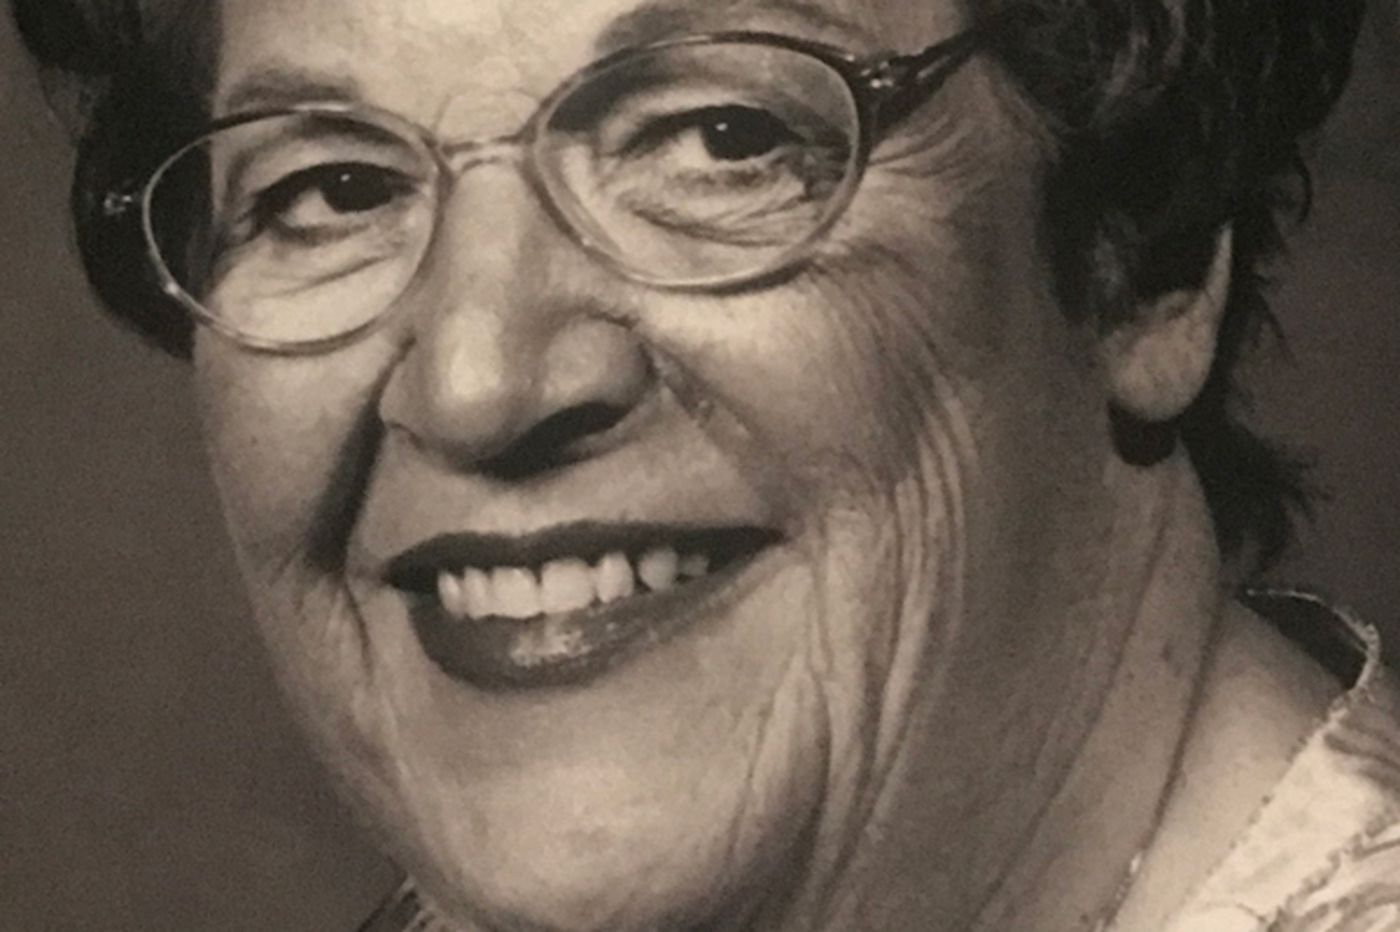 Geraldine Boblitt Fox, 79, co-owned N.J. landscaping firm